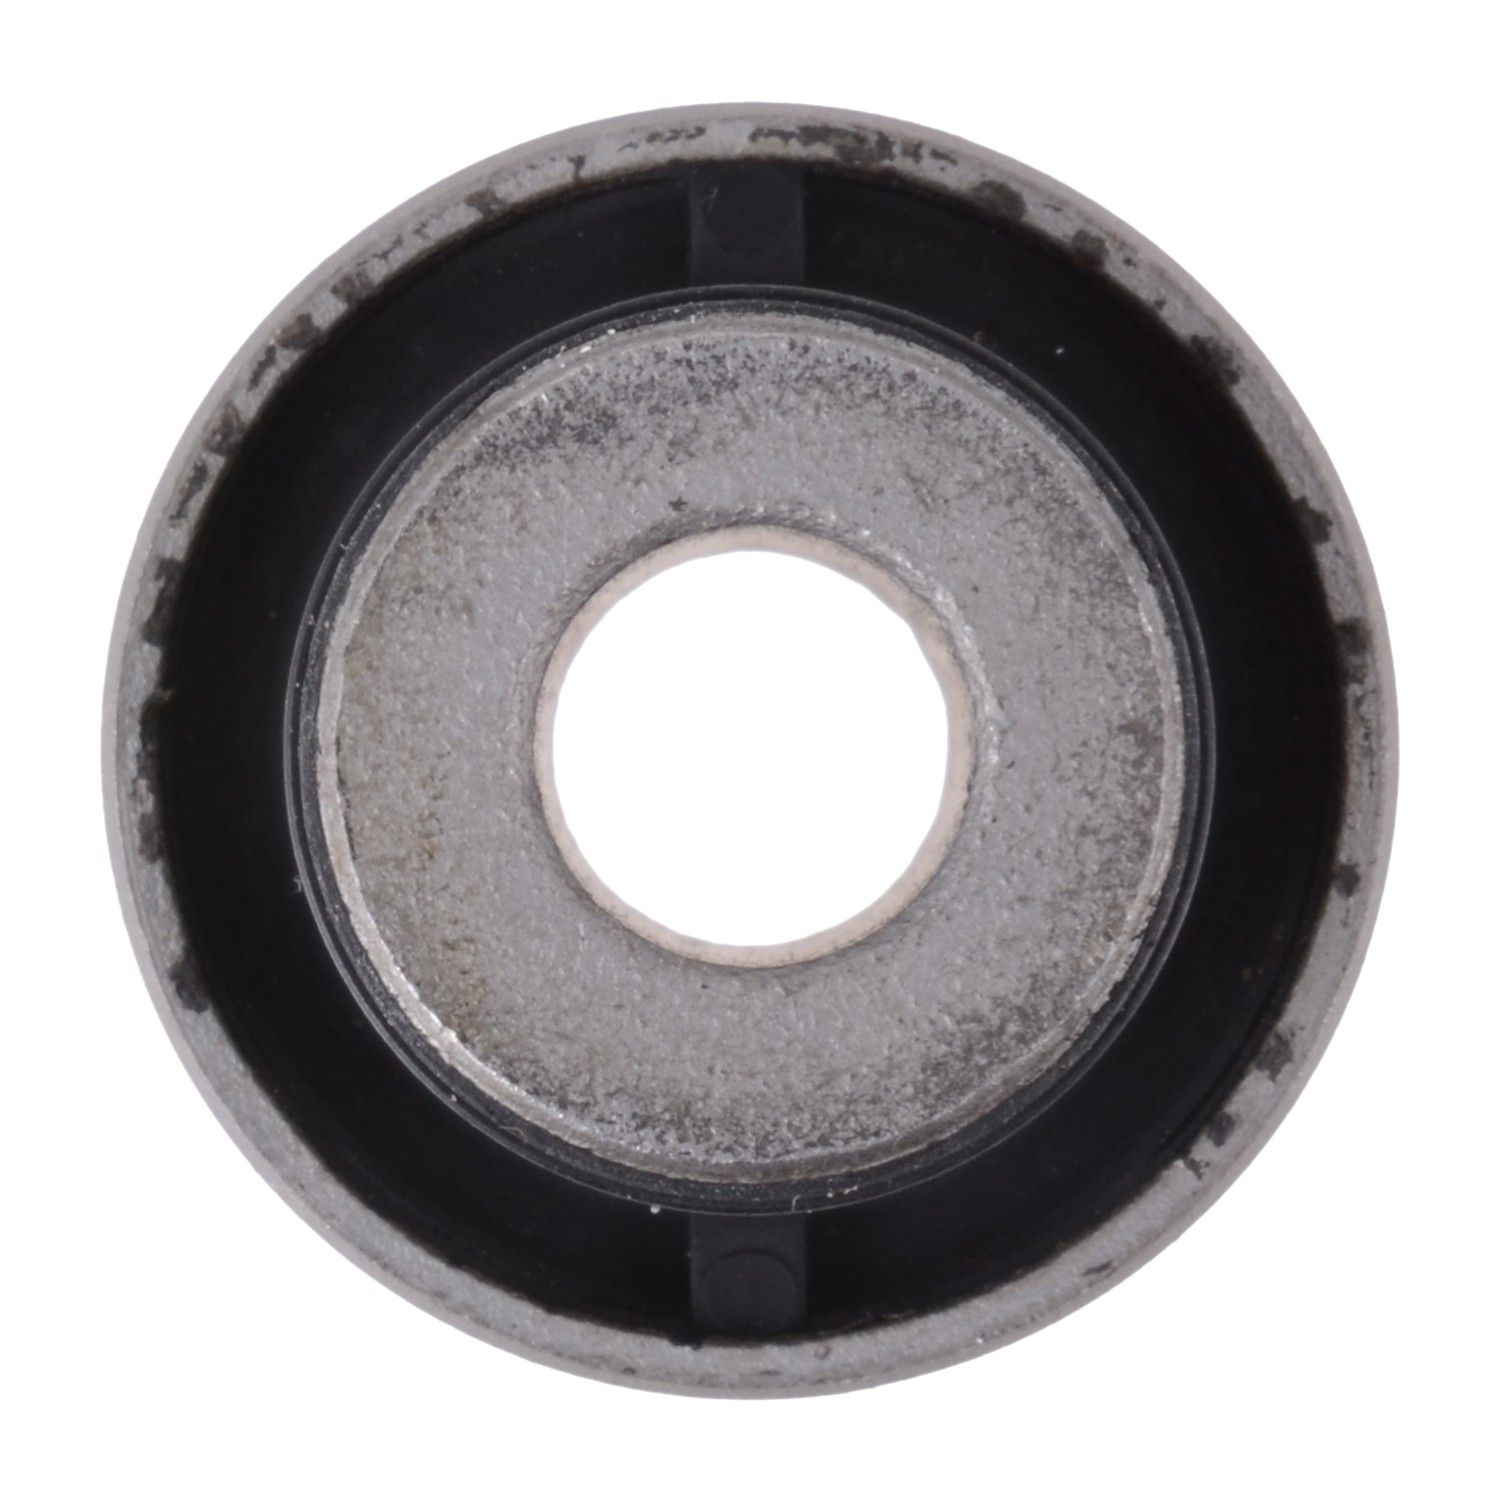 Honda Cr V Suspension Control Arm Bushing Replacement Ast Beck 2003 Rear Parts Diagram 1997 Front Upper Centric 60240065